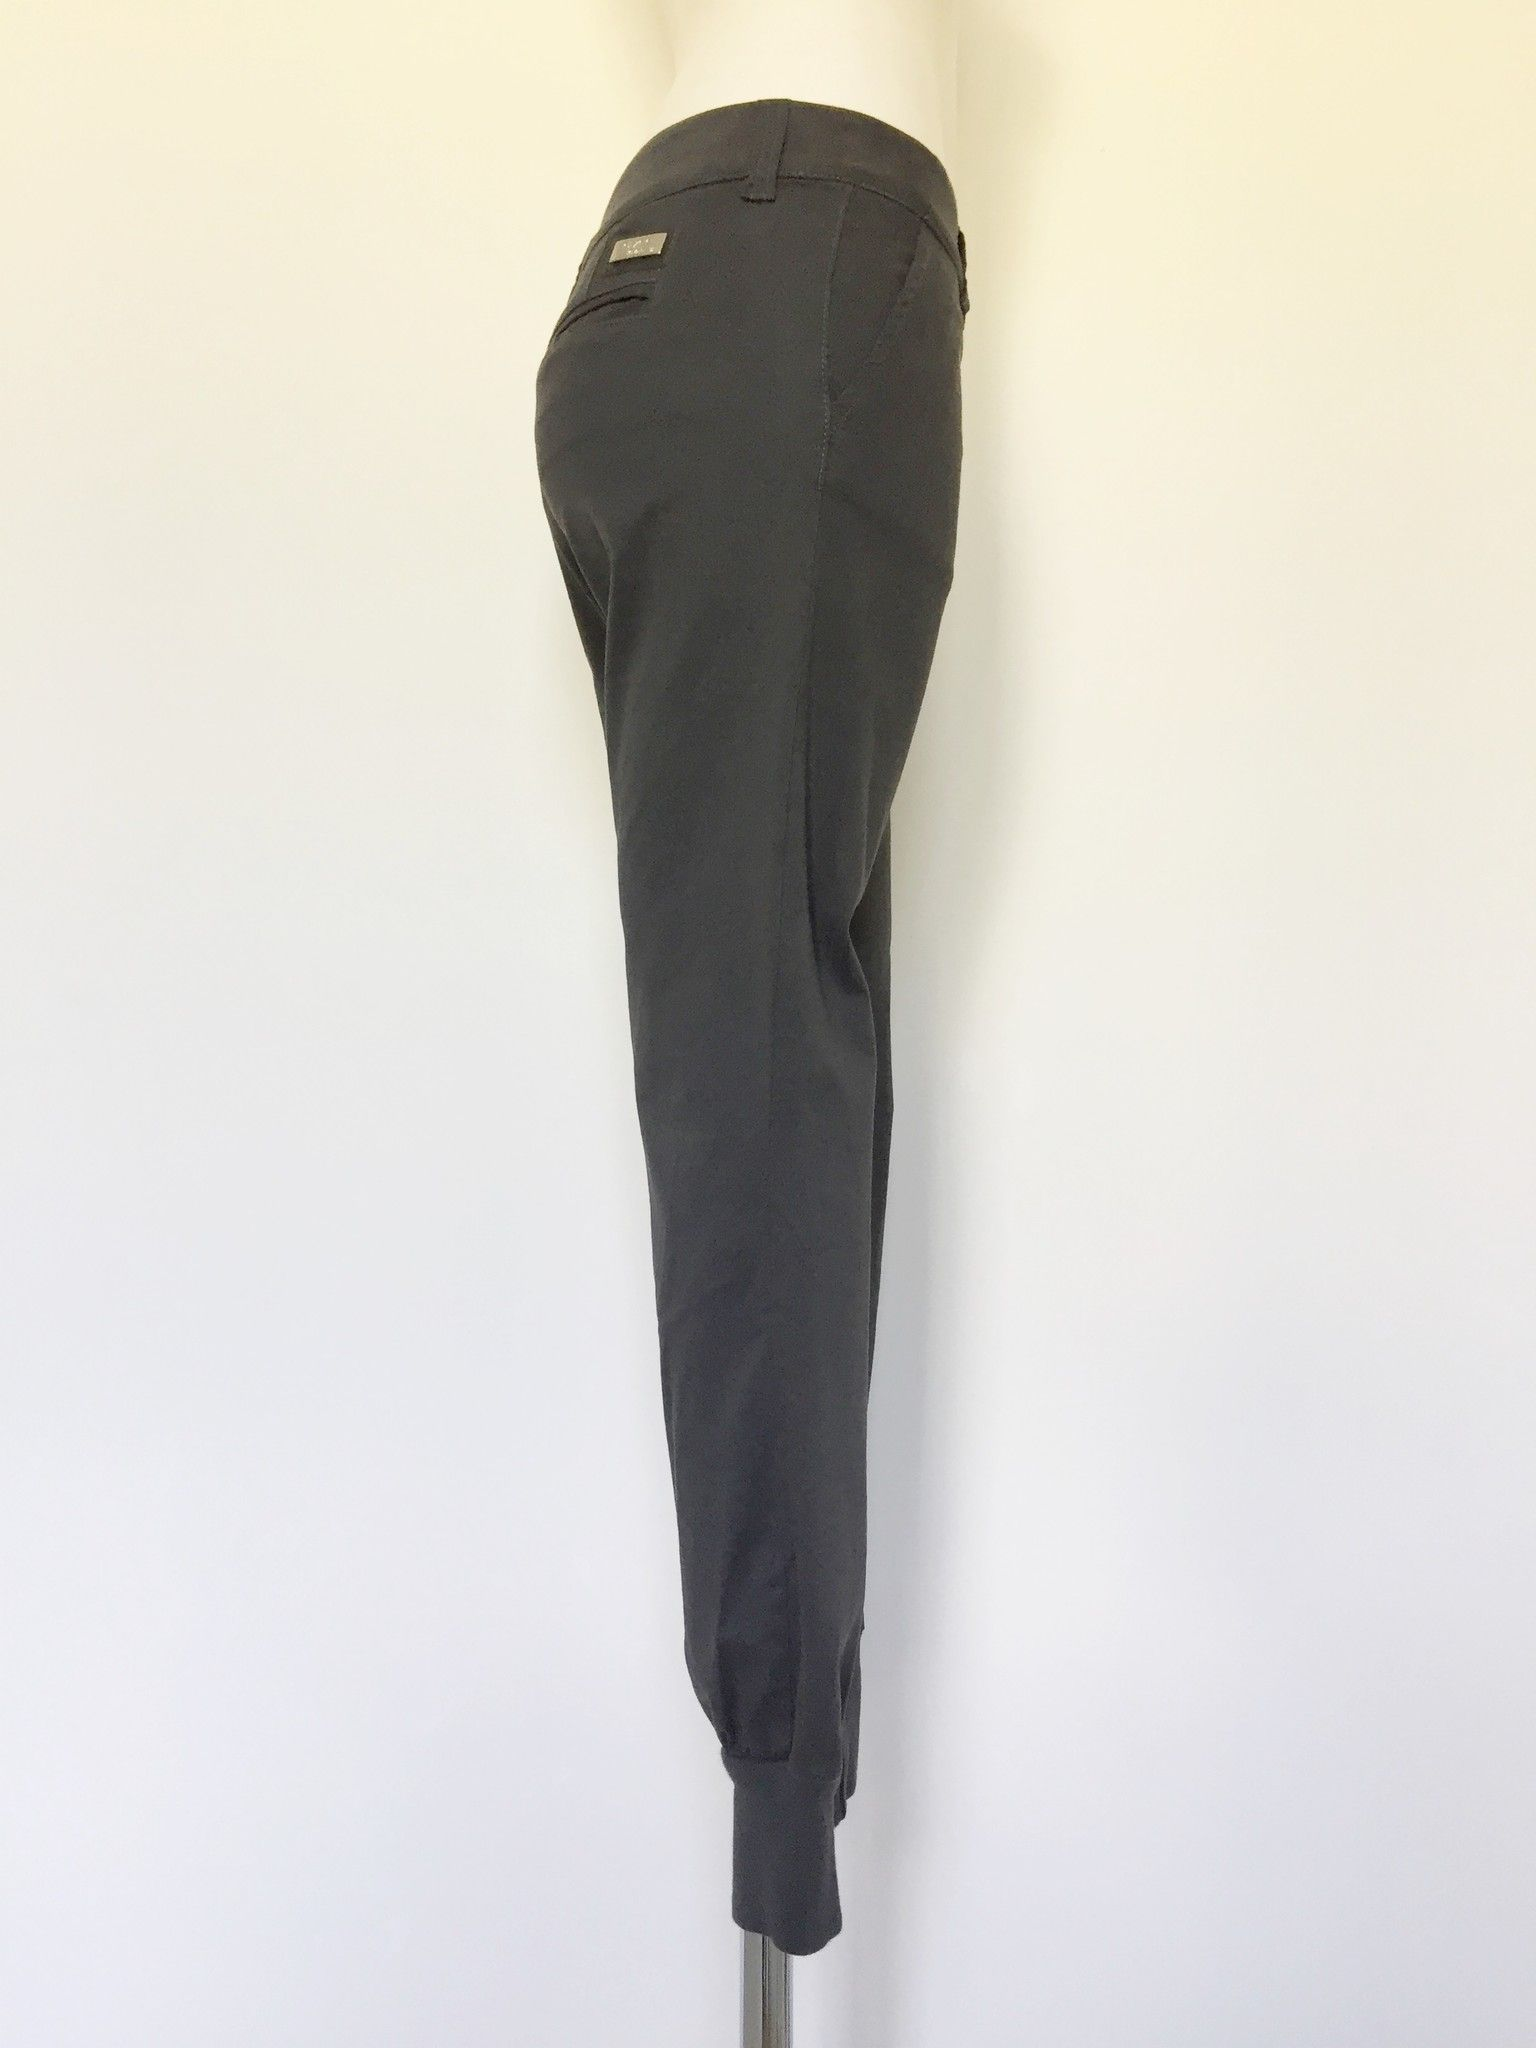 Qzee Sports Pants with Ankle Fabric Strap Cod.fly12